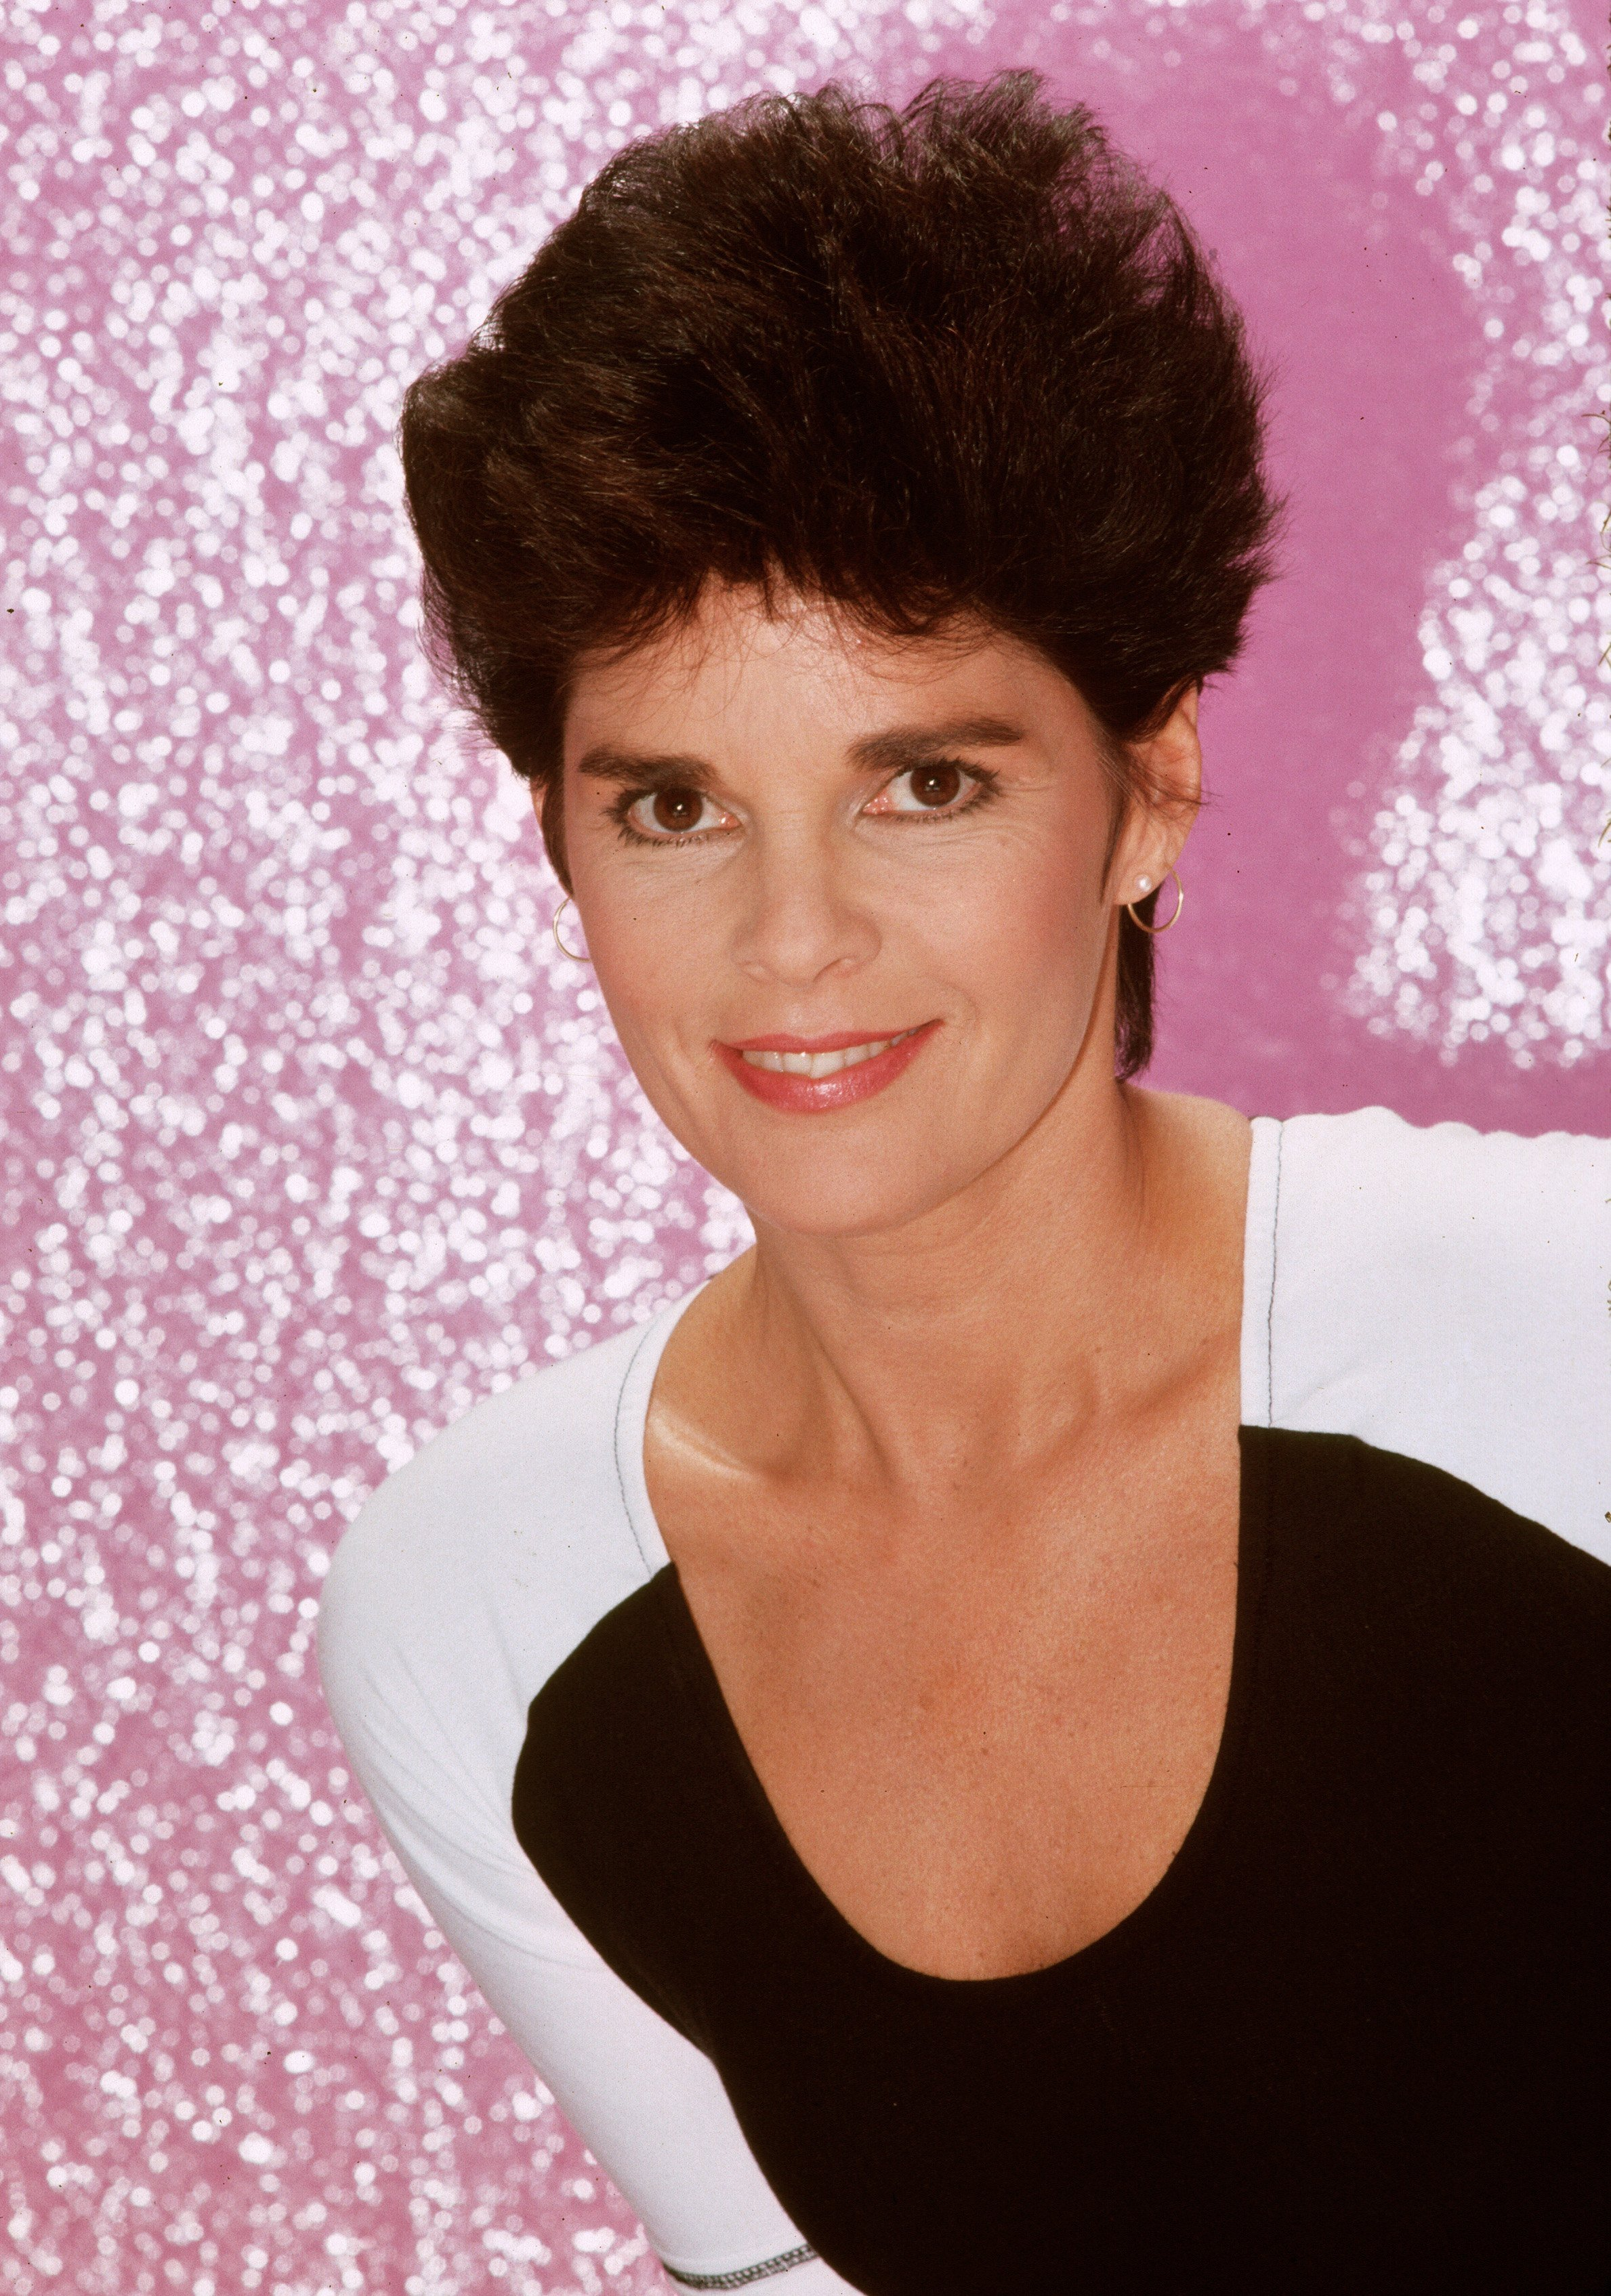 Actress Ali MacGraw poses for a portrait in 1982 in Los Angeles, California.| Source: Getty Images